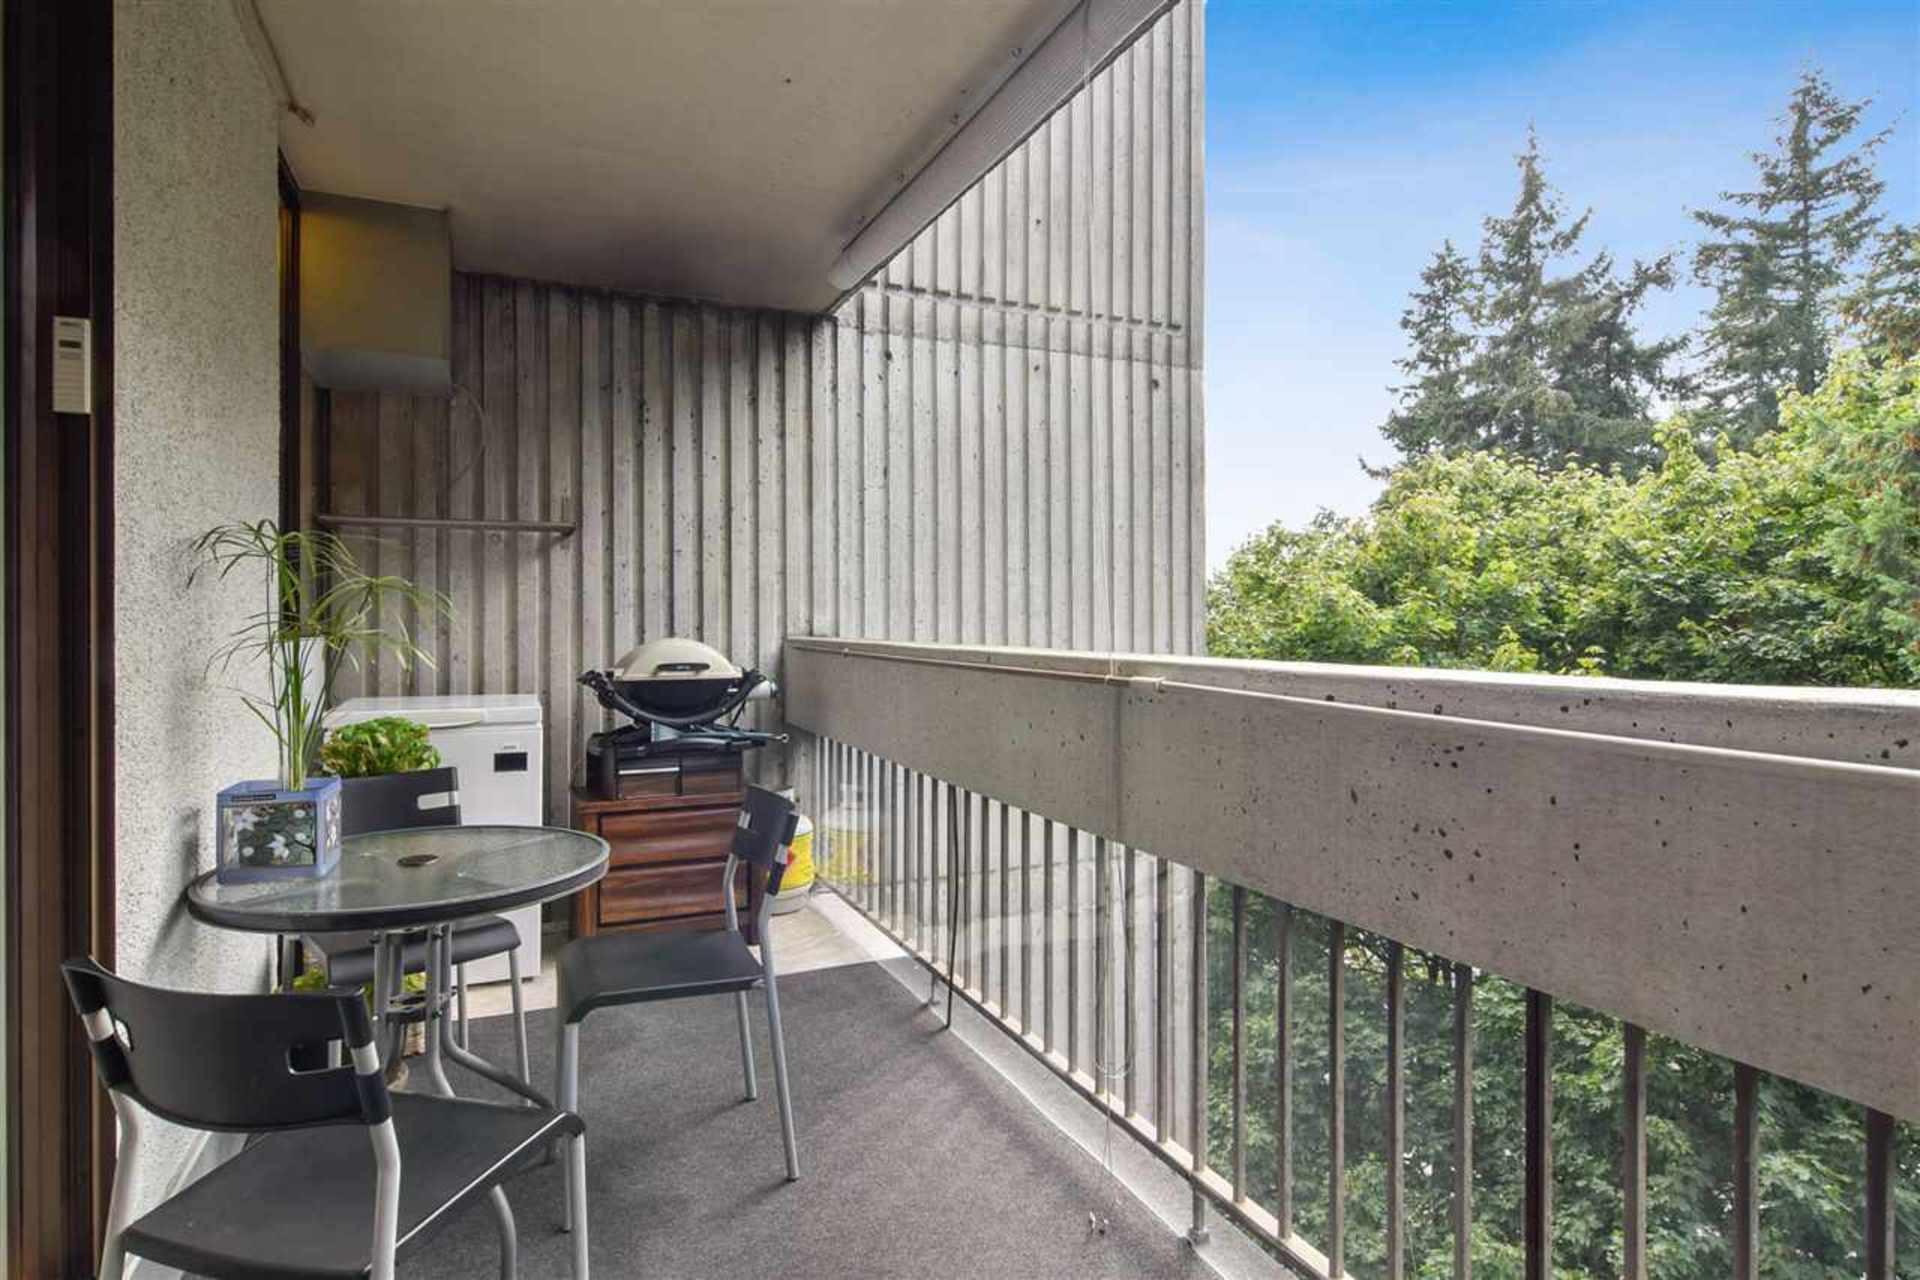 6689-willingdon-avenue-metrotown-burnaby-south-20 at 601 - 6689 Willingdon Avenue, Metrotown, Burnaby South